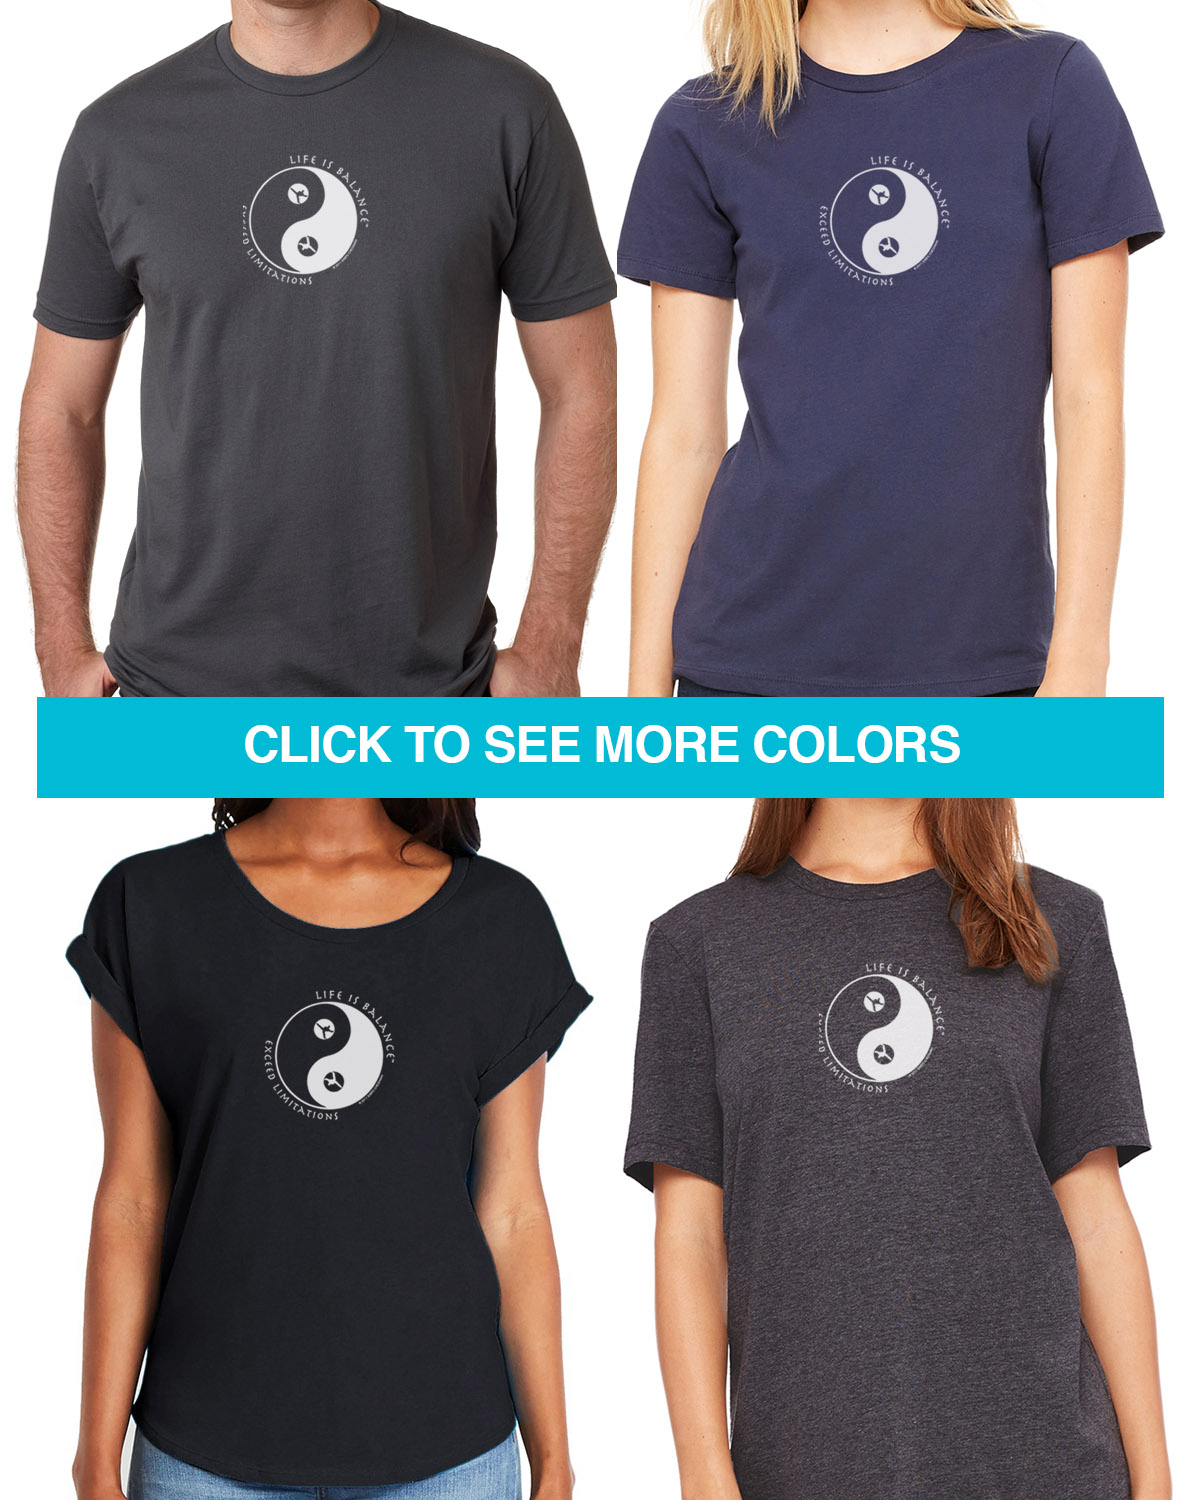 Martial Arts short sleeve T-shirts for Men and Women.